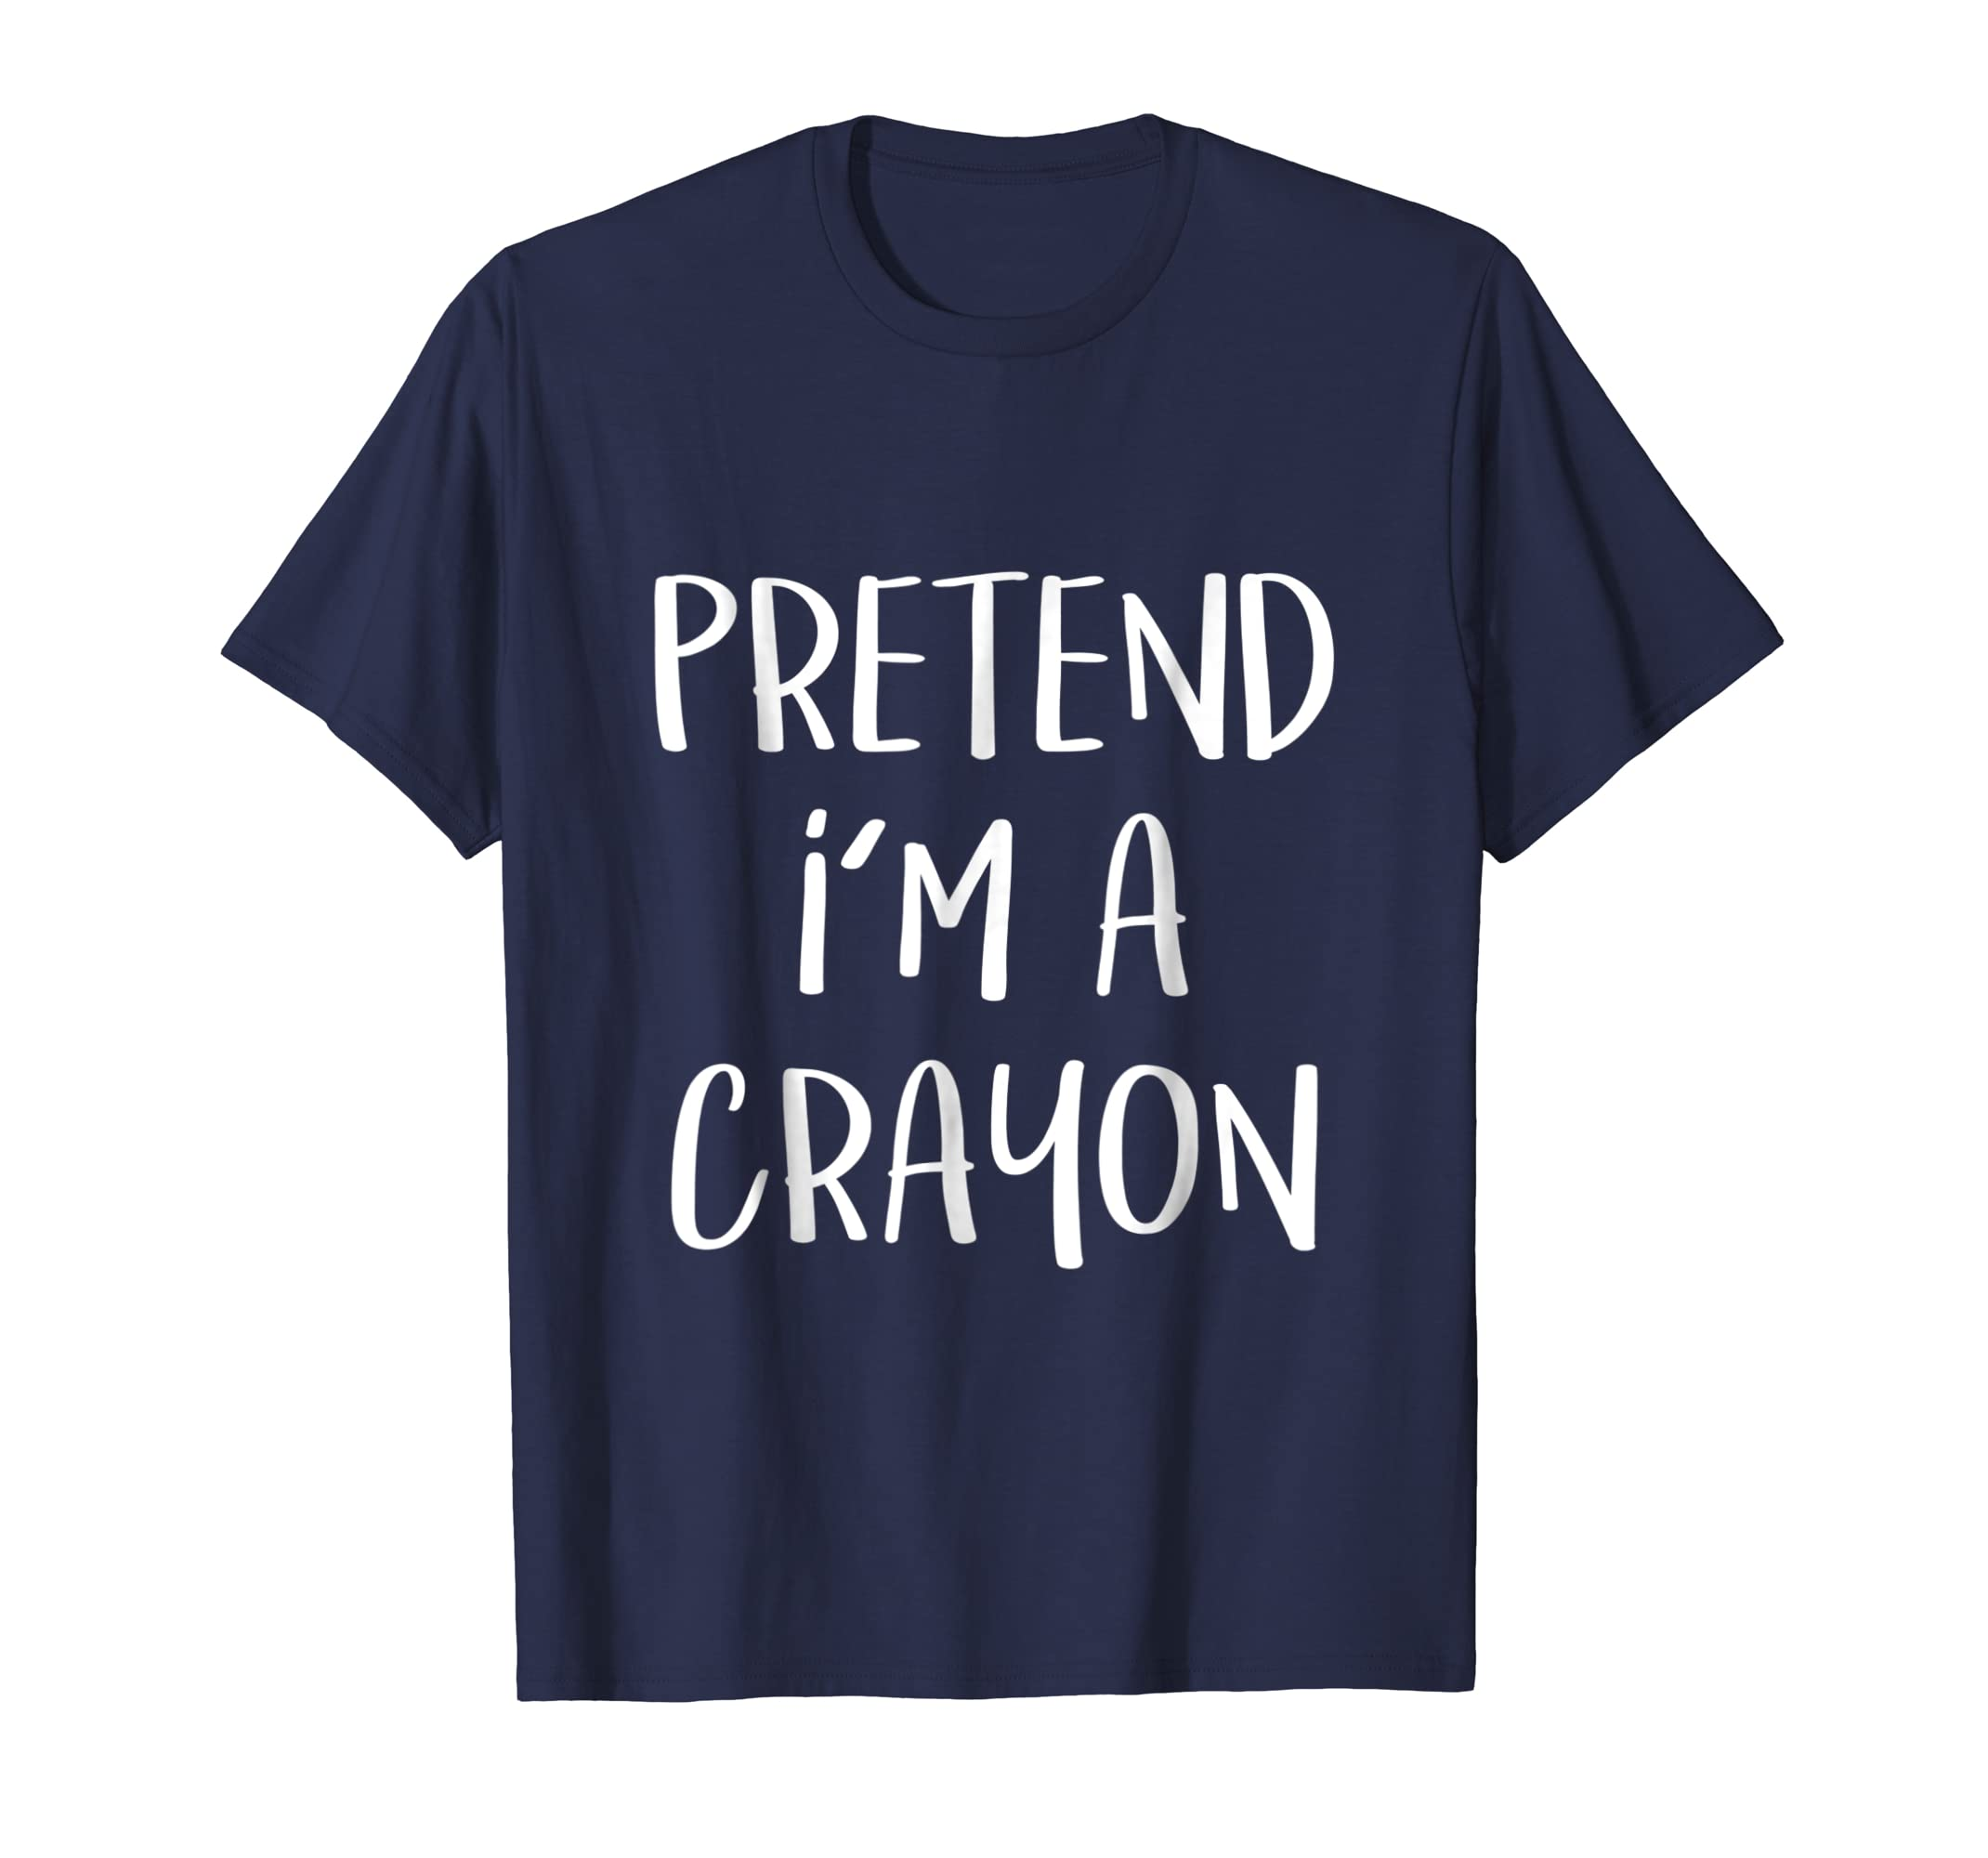 Pretend I'm A Crayon Costume Funny Halloween Party T Shirt-Bawle